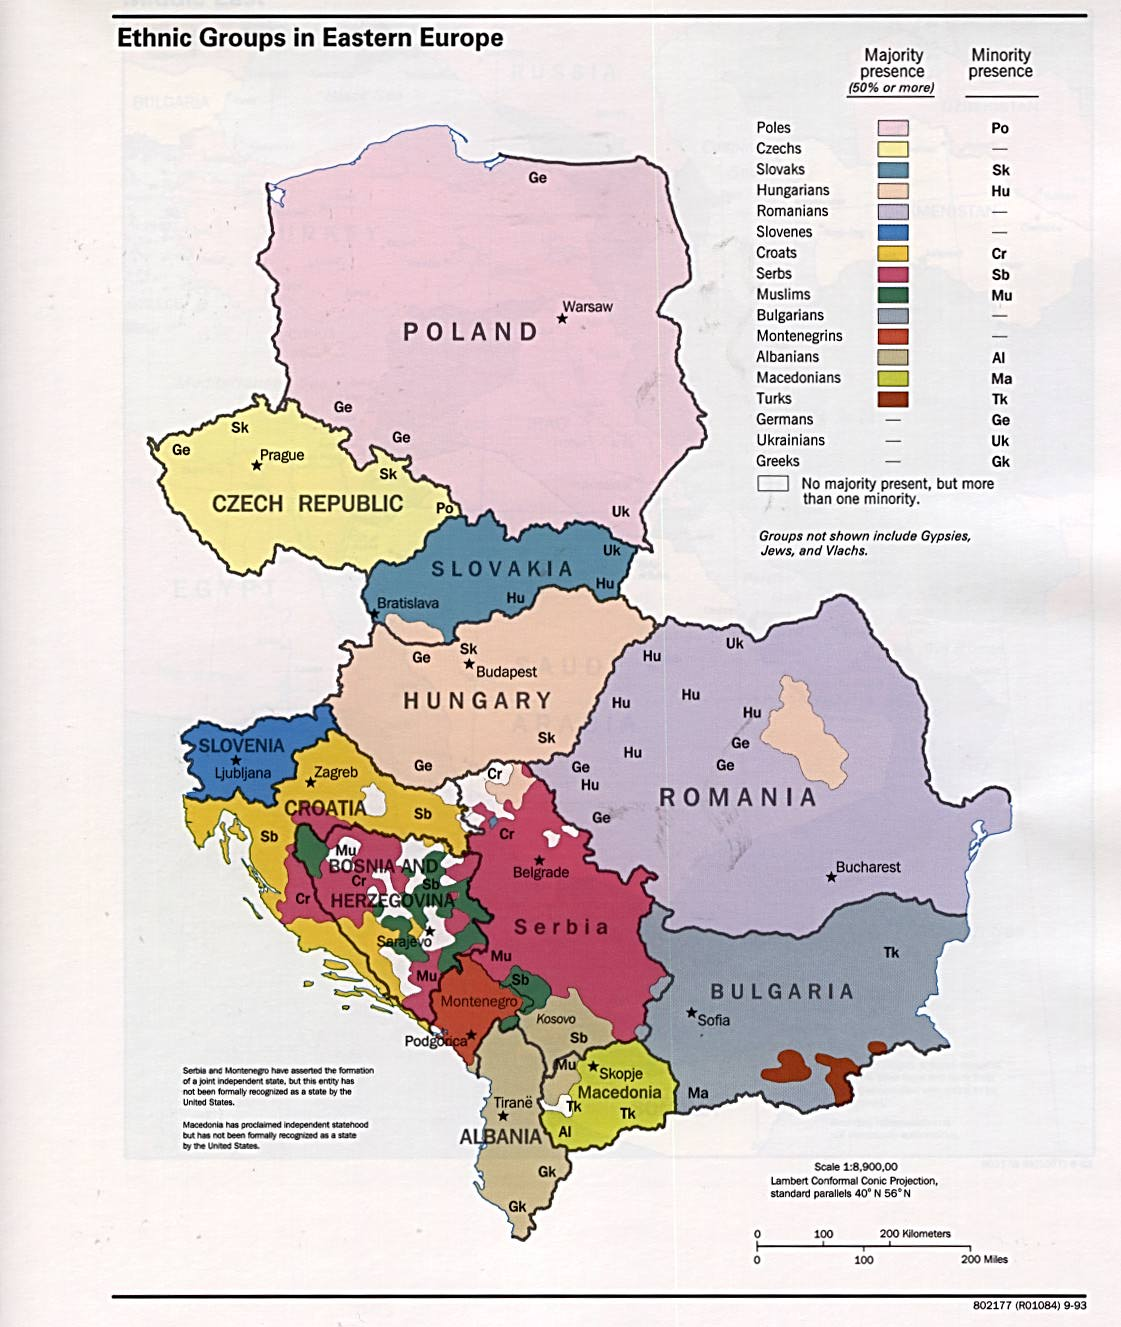 Ethnic groups in Eastern Europe 1993 - Full size